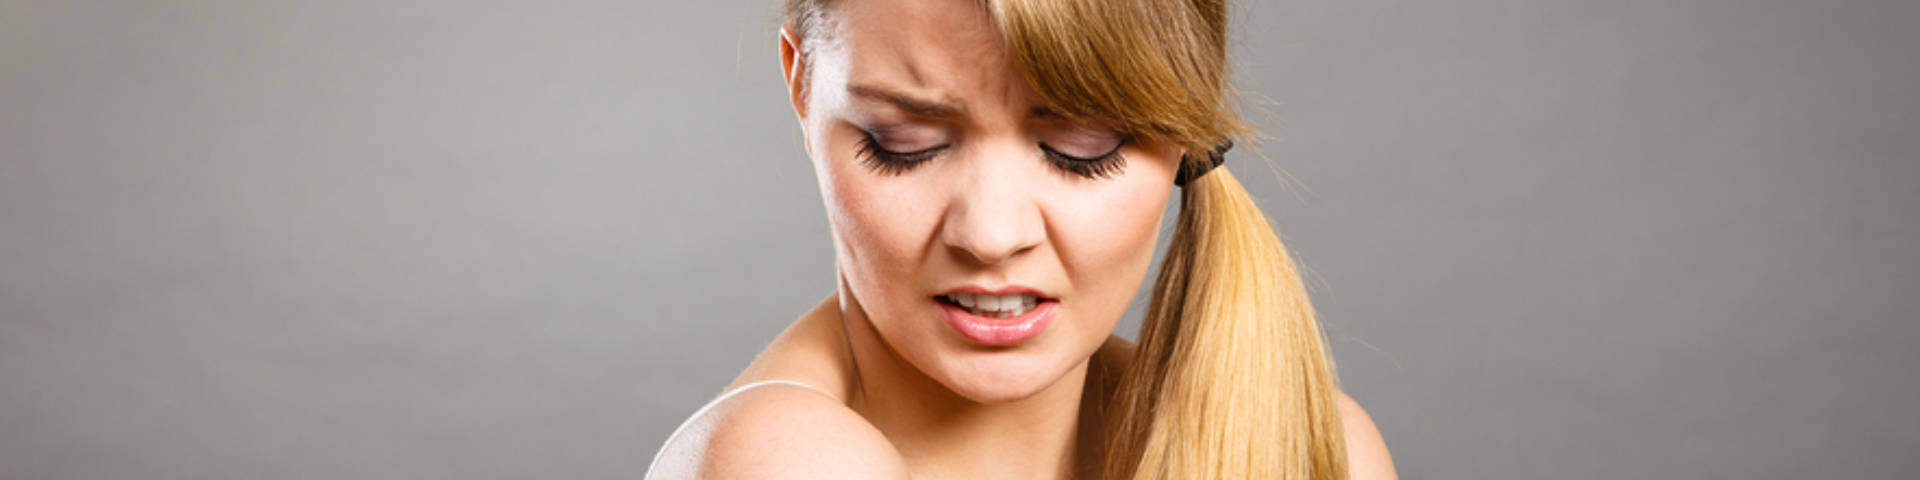 young woman suffering from chronic pain